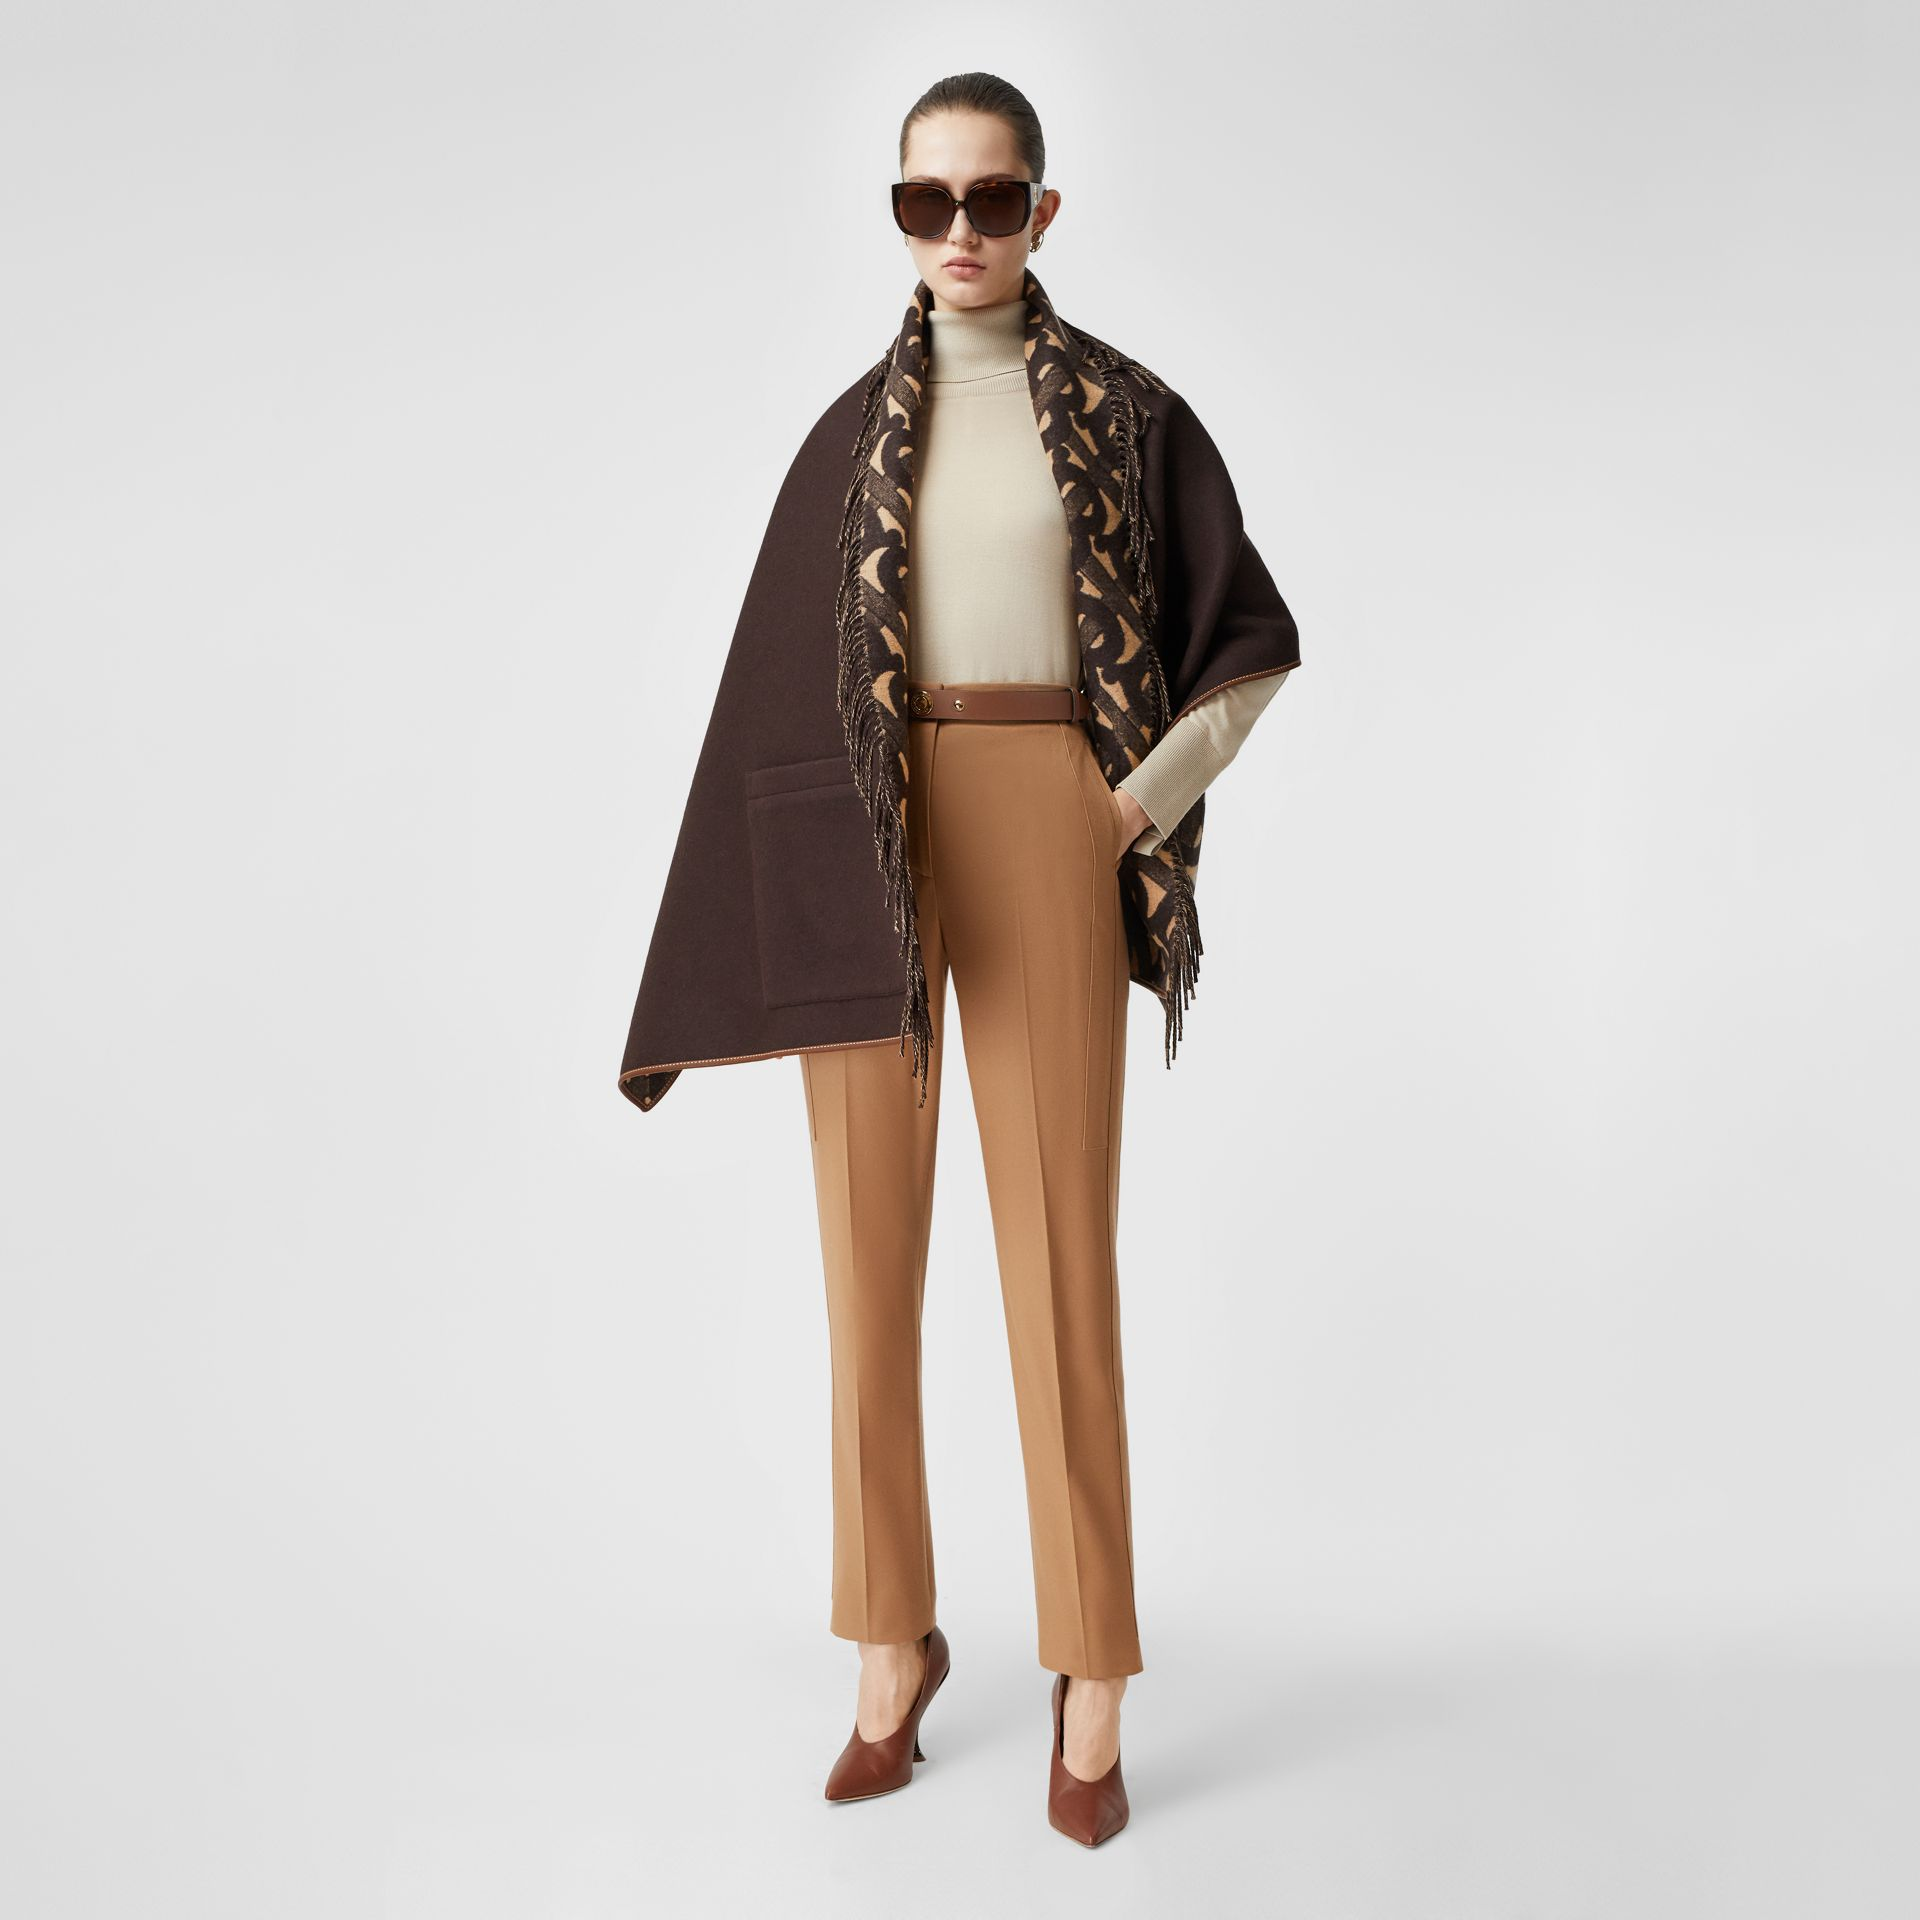 Monogram Merino Wool Cashmere Jacquard Cape in Deep Brown - Women | Burberry United Kingdom - gallery image 0